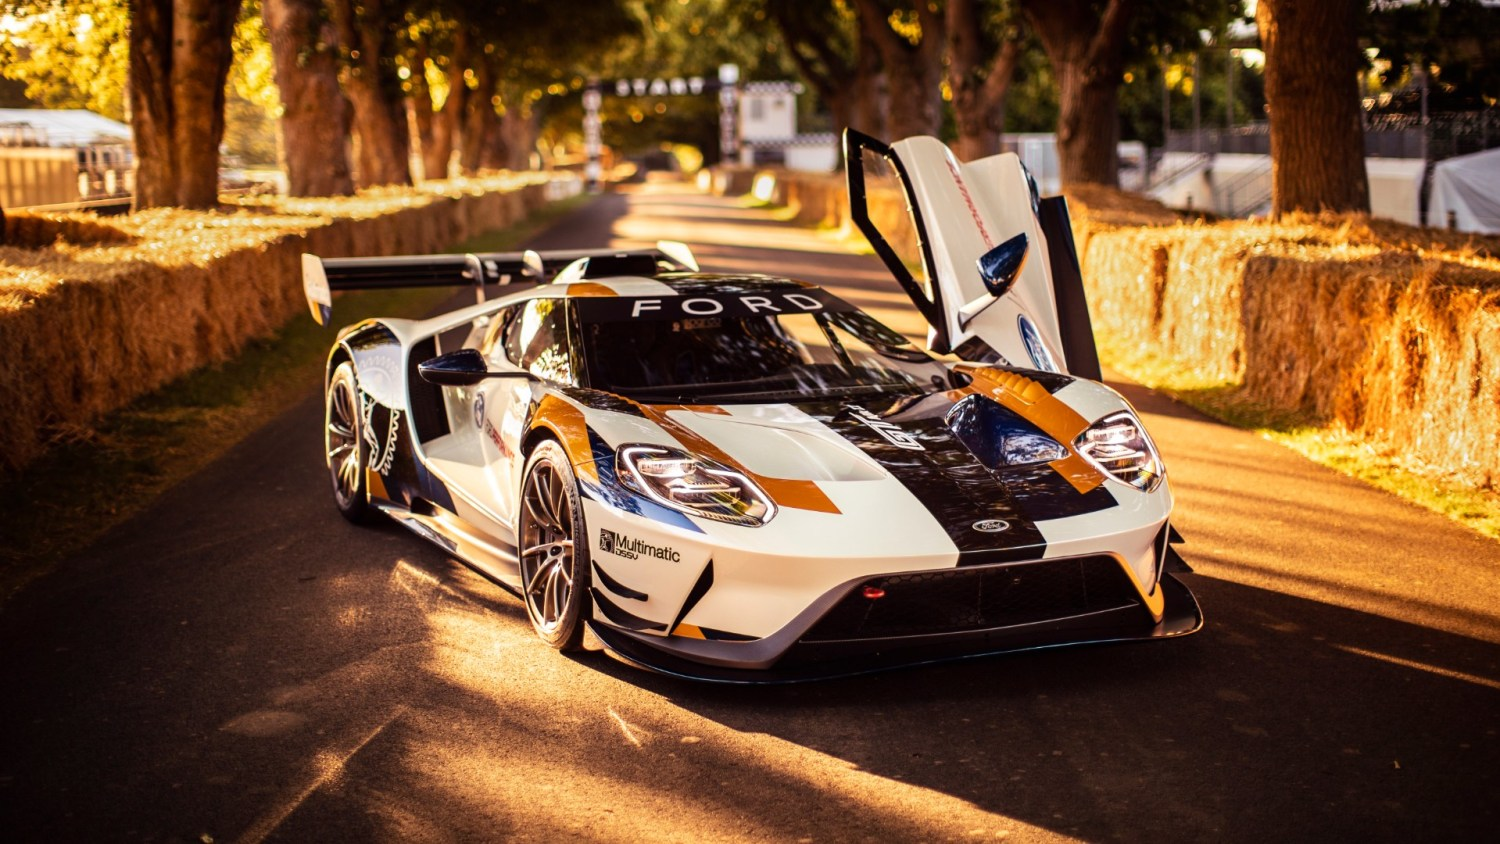 Ford GT MkII track-only supercar at Goodwood